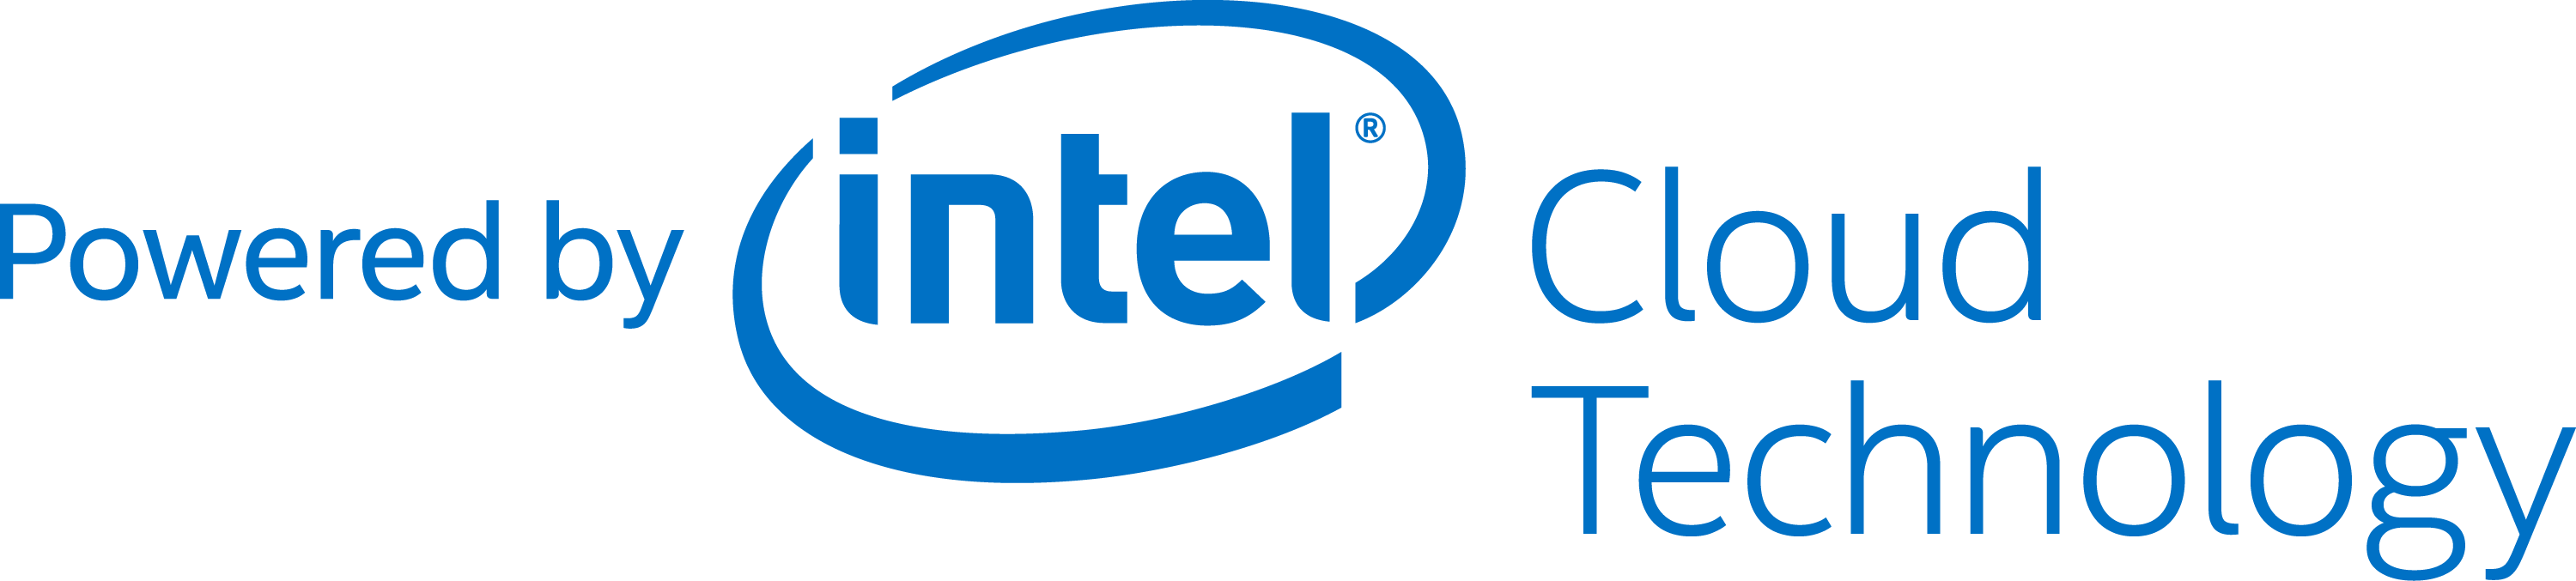 Gesponsord door Intel Cloud Technology